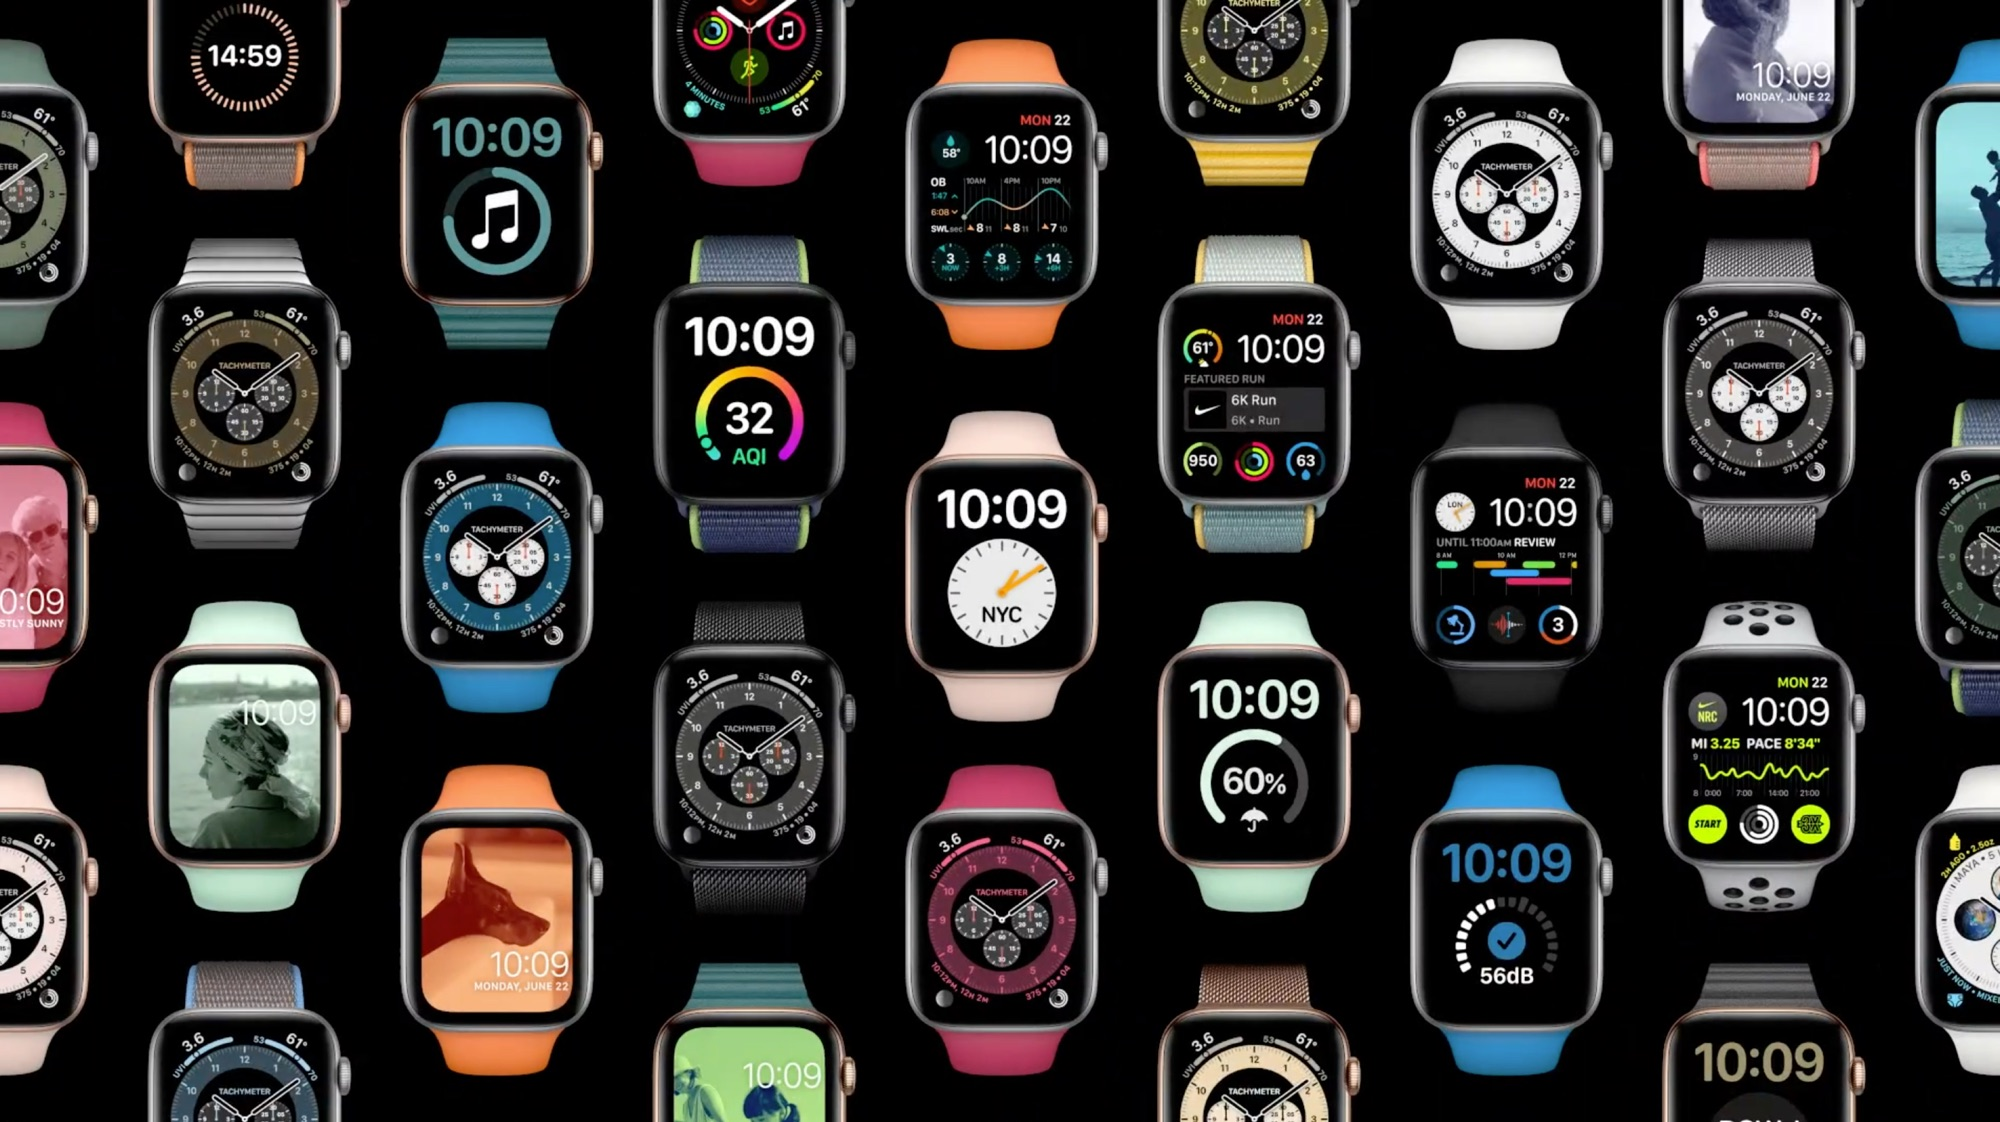 watchOS 7 horloges.